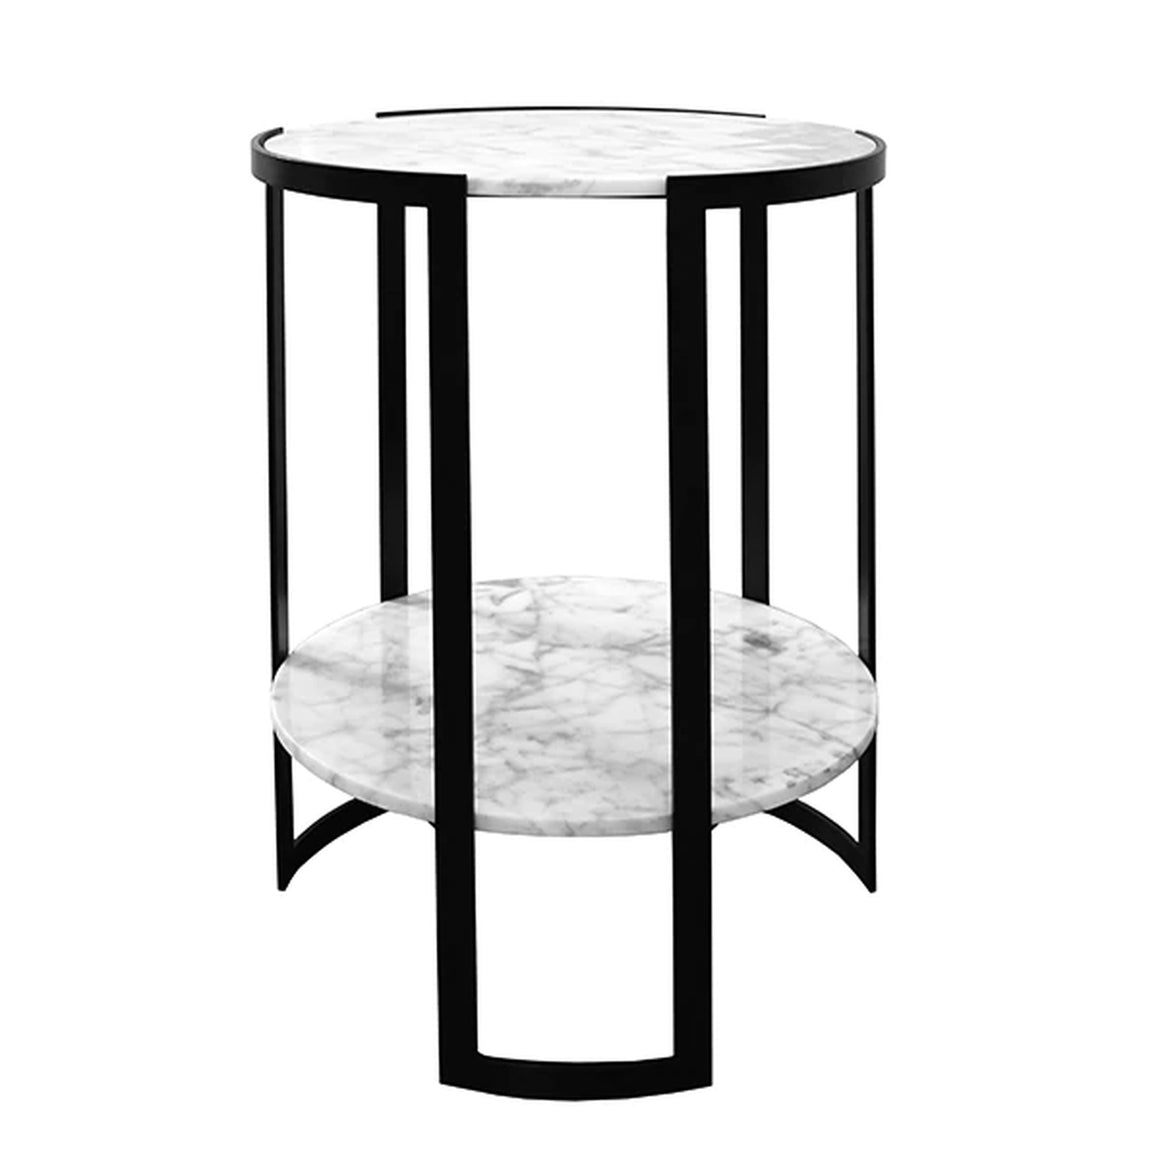 Worlds Away Round Marble Top Side Table - Black